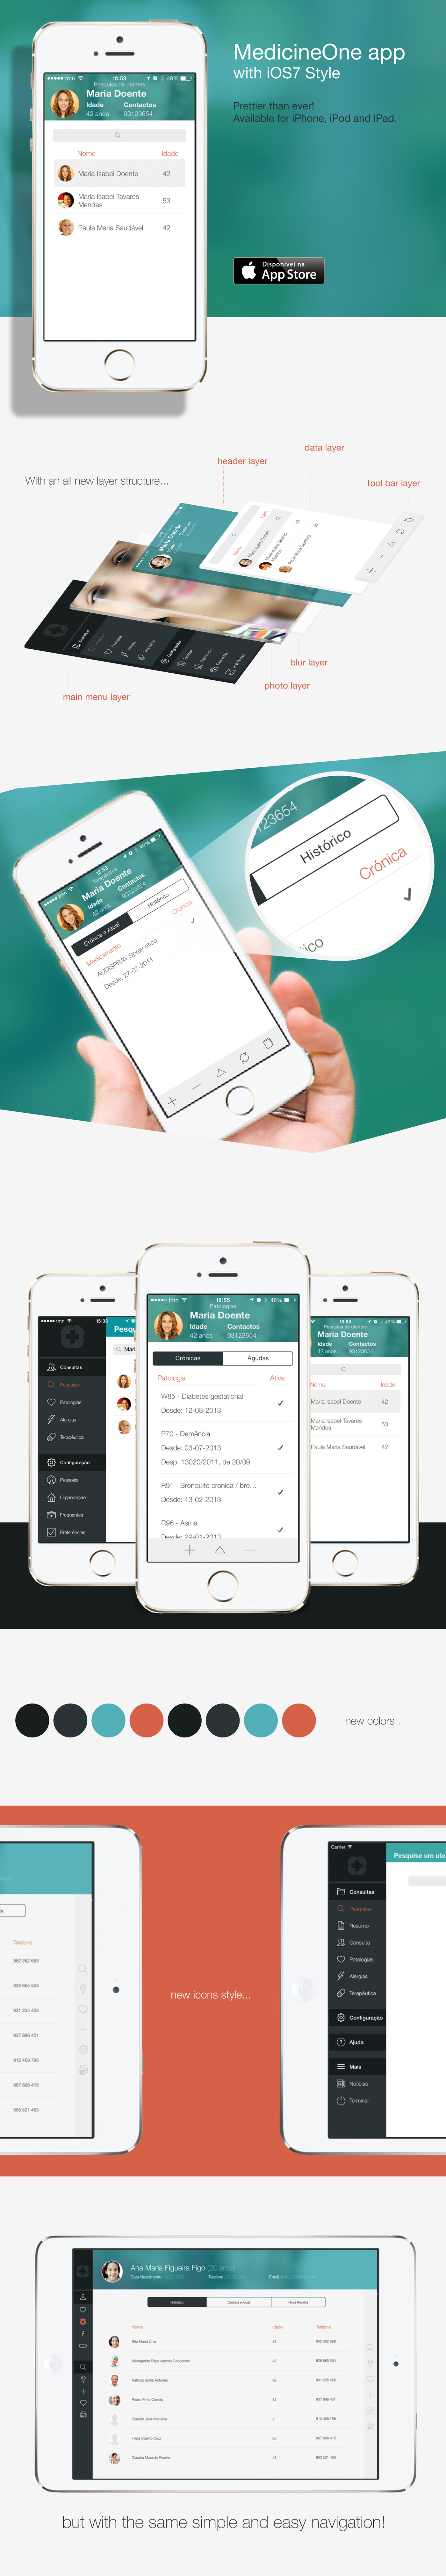 """MedicineOne apps""""MedicineOne is a patient-centered tool for integrated healthcare management, developed to respond to the multiple needs of healthcare providers. MedicineOne manages all of the patients' clinical and administrative information, ensuring …"""